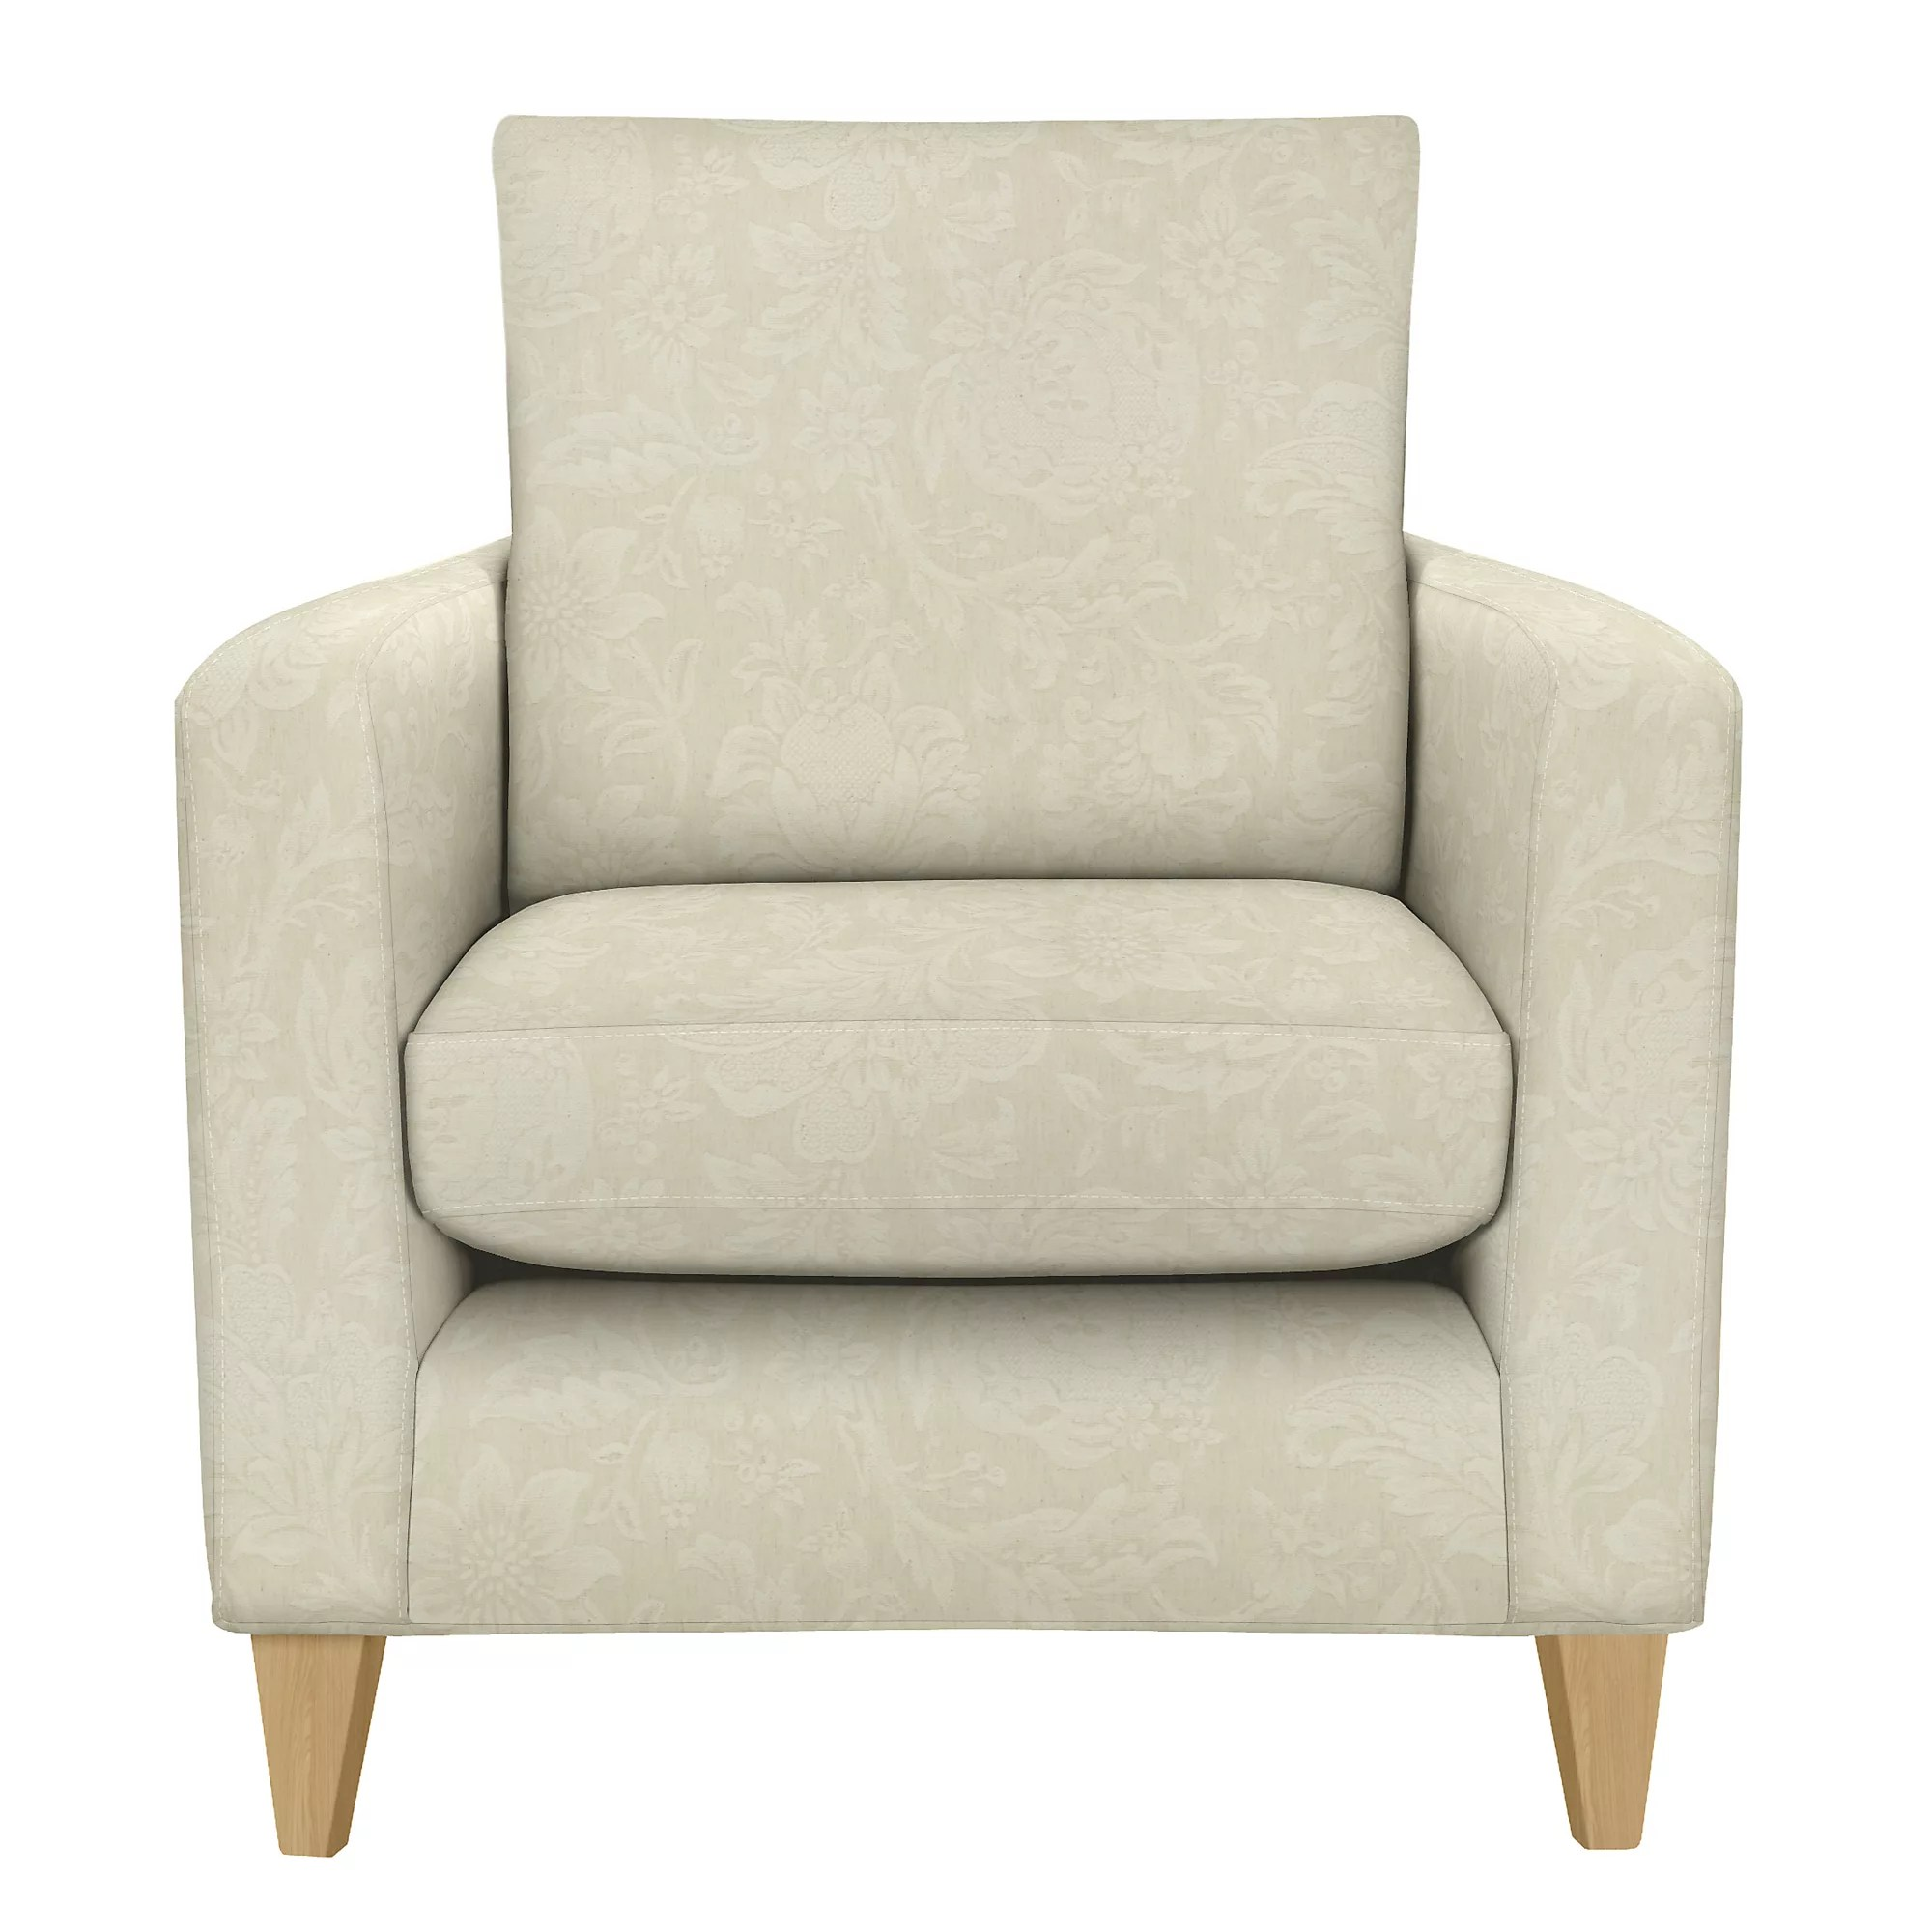 small sofas and armchairs sofa repairs redditch light coloured fabric leather snuggler